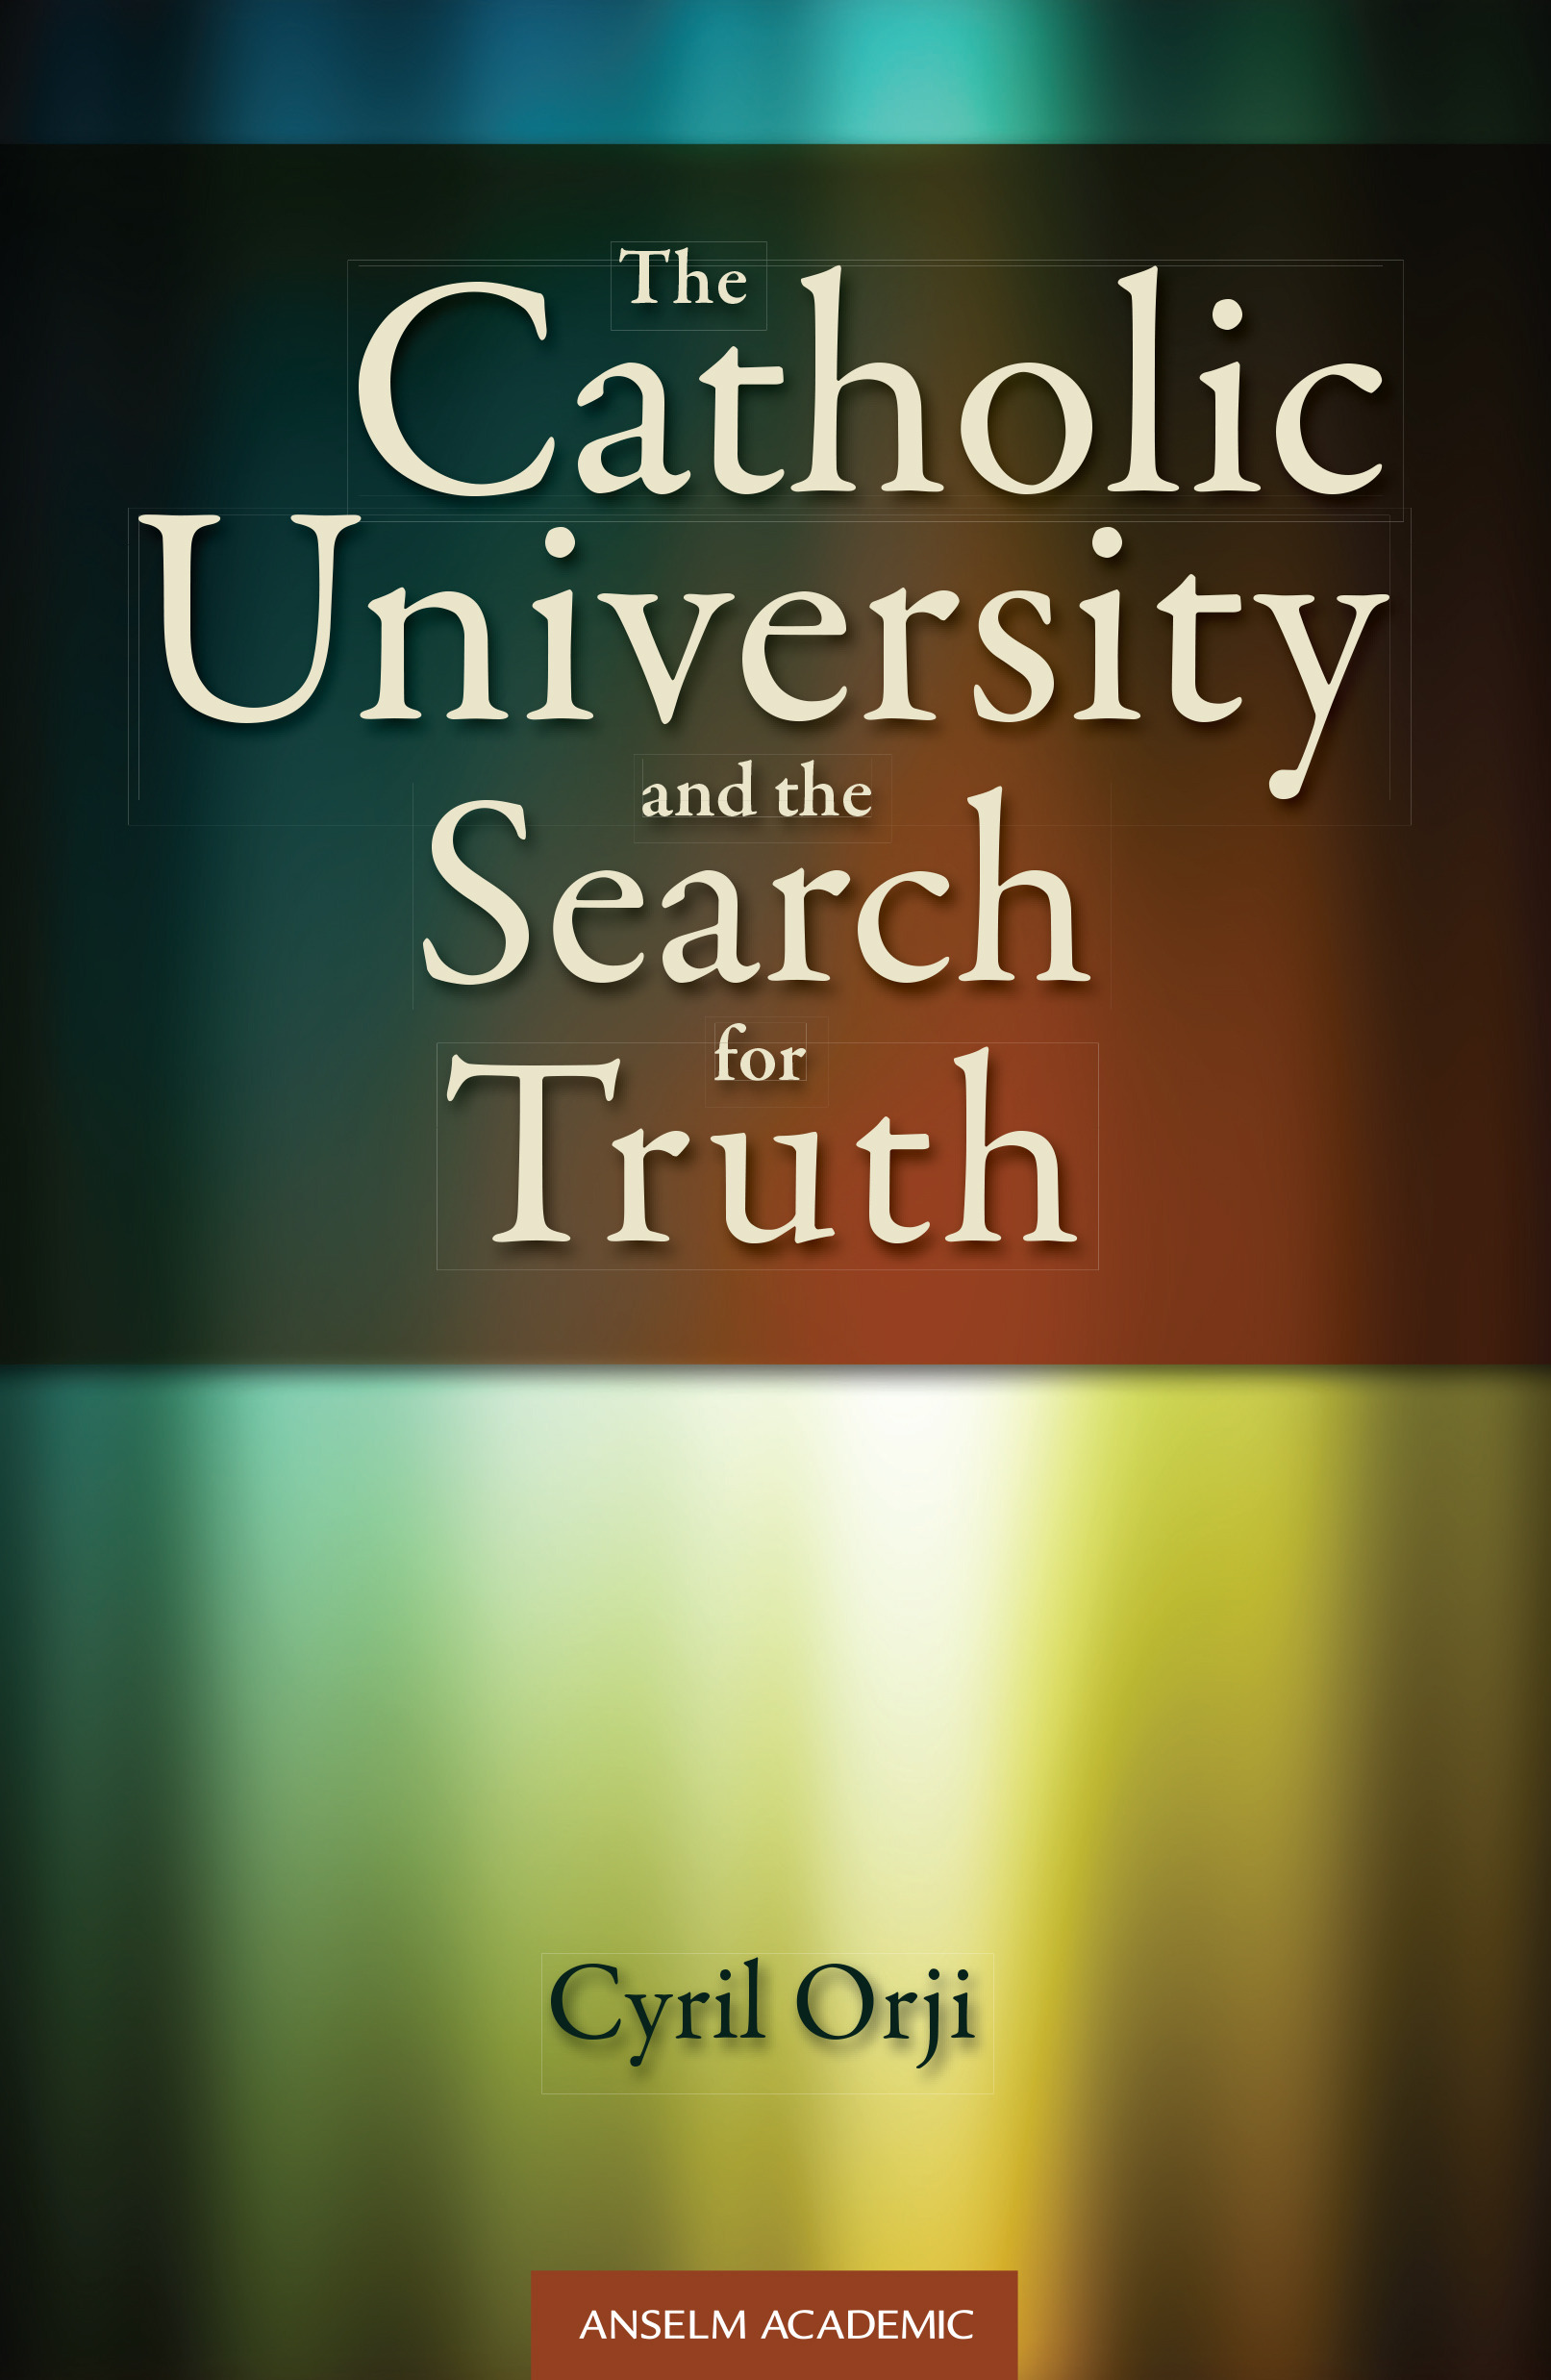 Catholic University and the Search for Truth